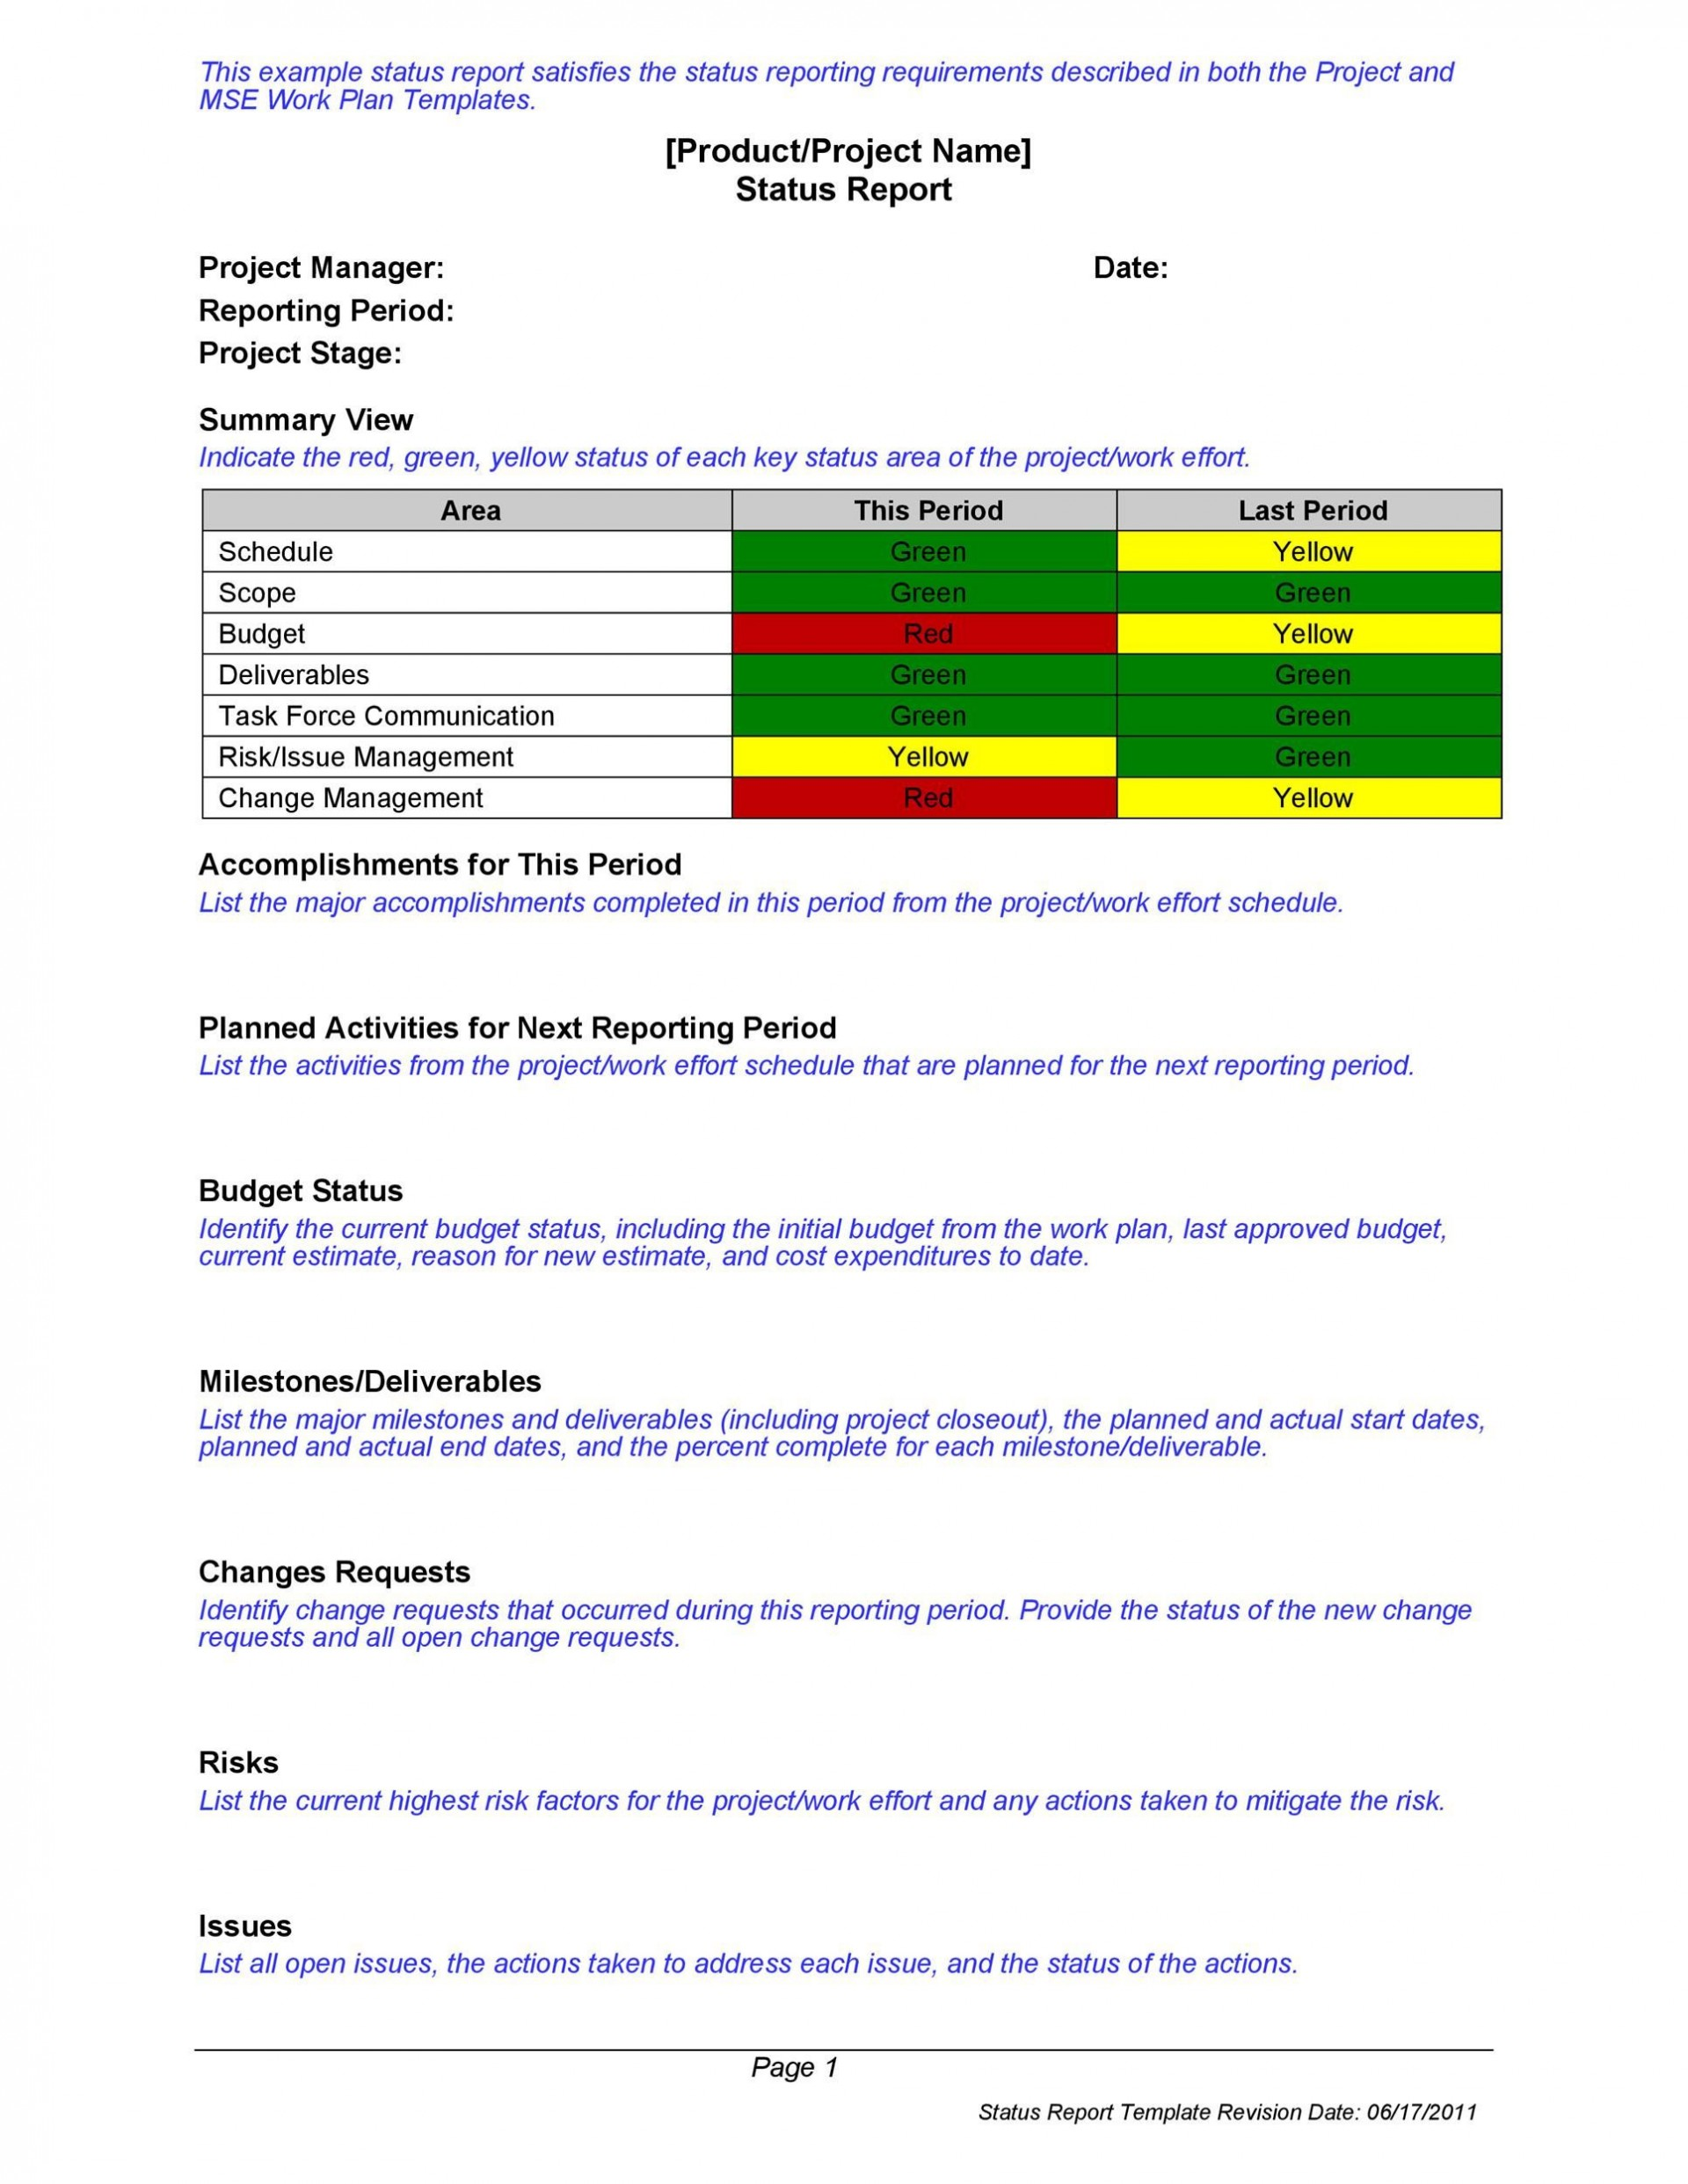 008 Remarkable Project Management Weekly Statu Report Template Ppt Picture  Template+powerpoint1920